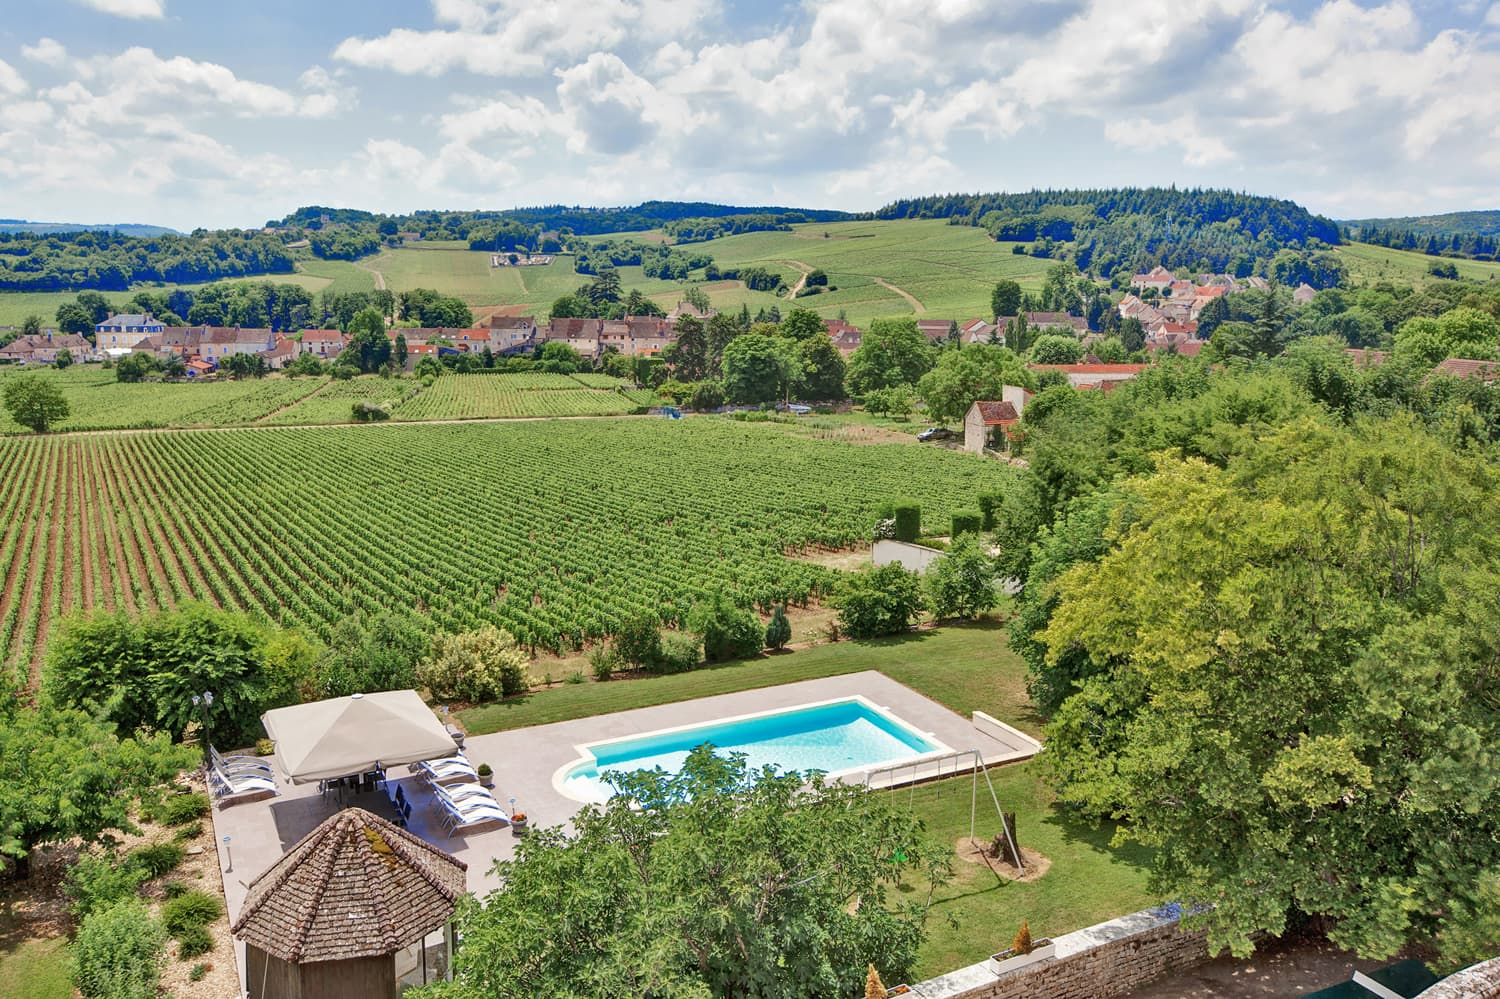 Vacation rental châteaux with private pool in Burgundy with countryside views | Château Saône